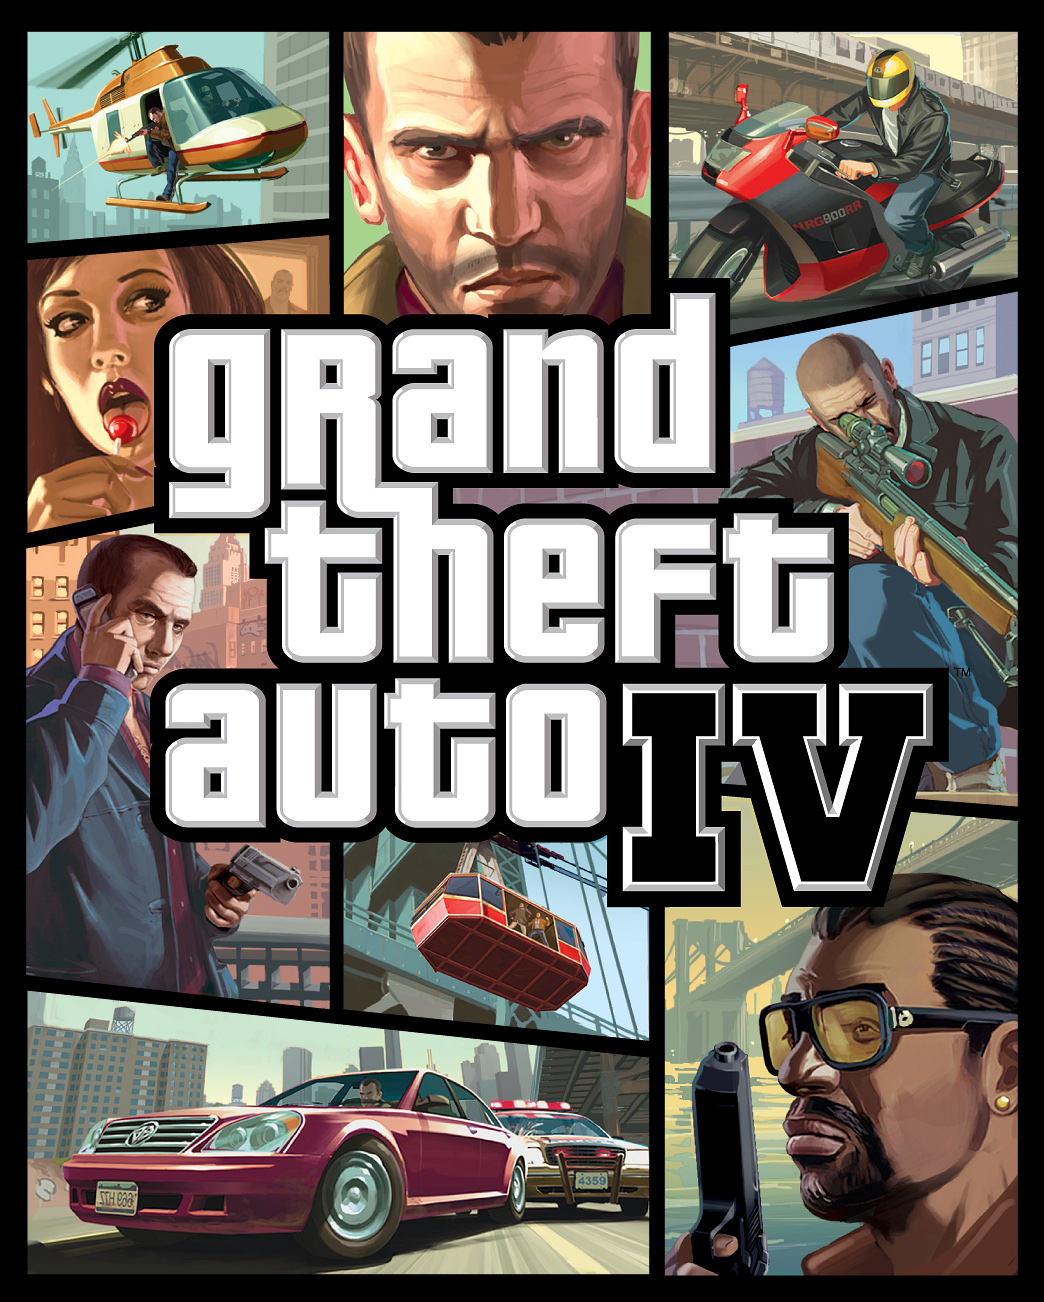 grand theft auto 5 Grand theft auto v the action-packed fifth main installment in a world-renowned series, complete with single player and multiplayer modes.